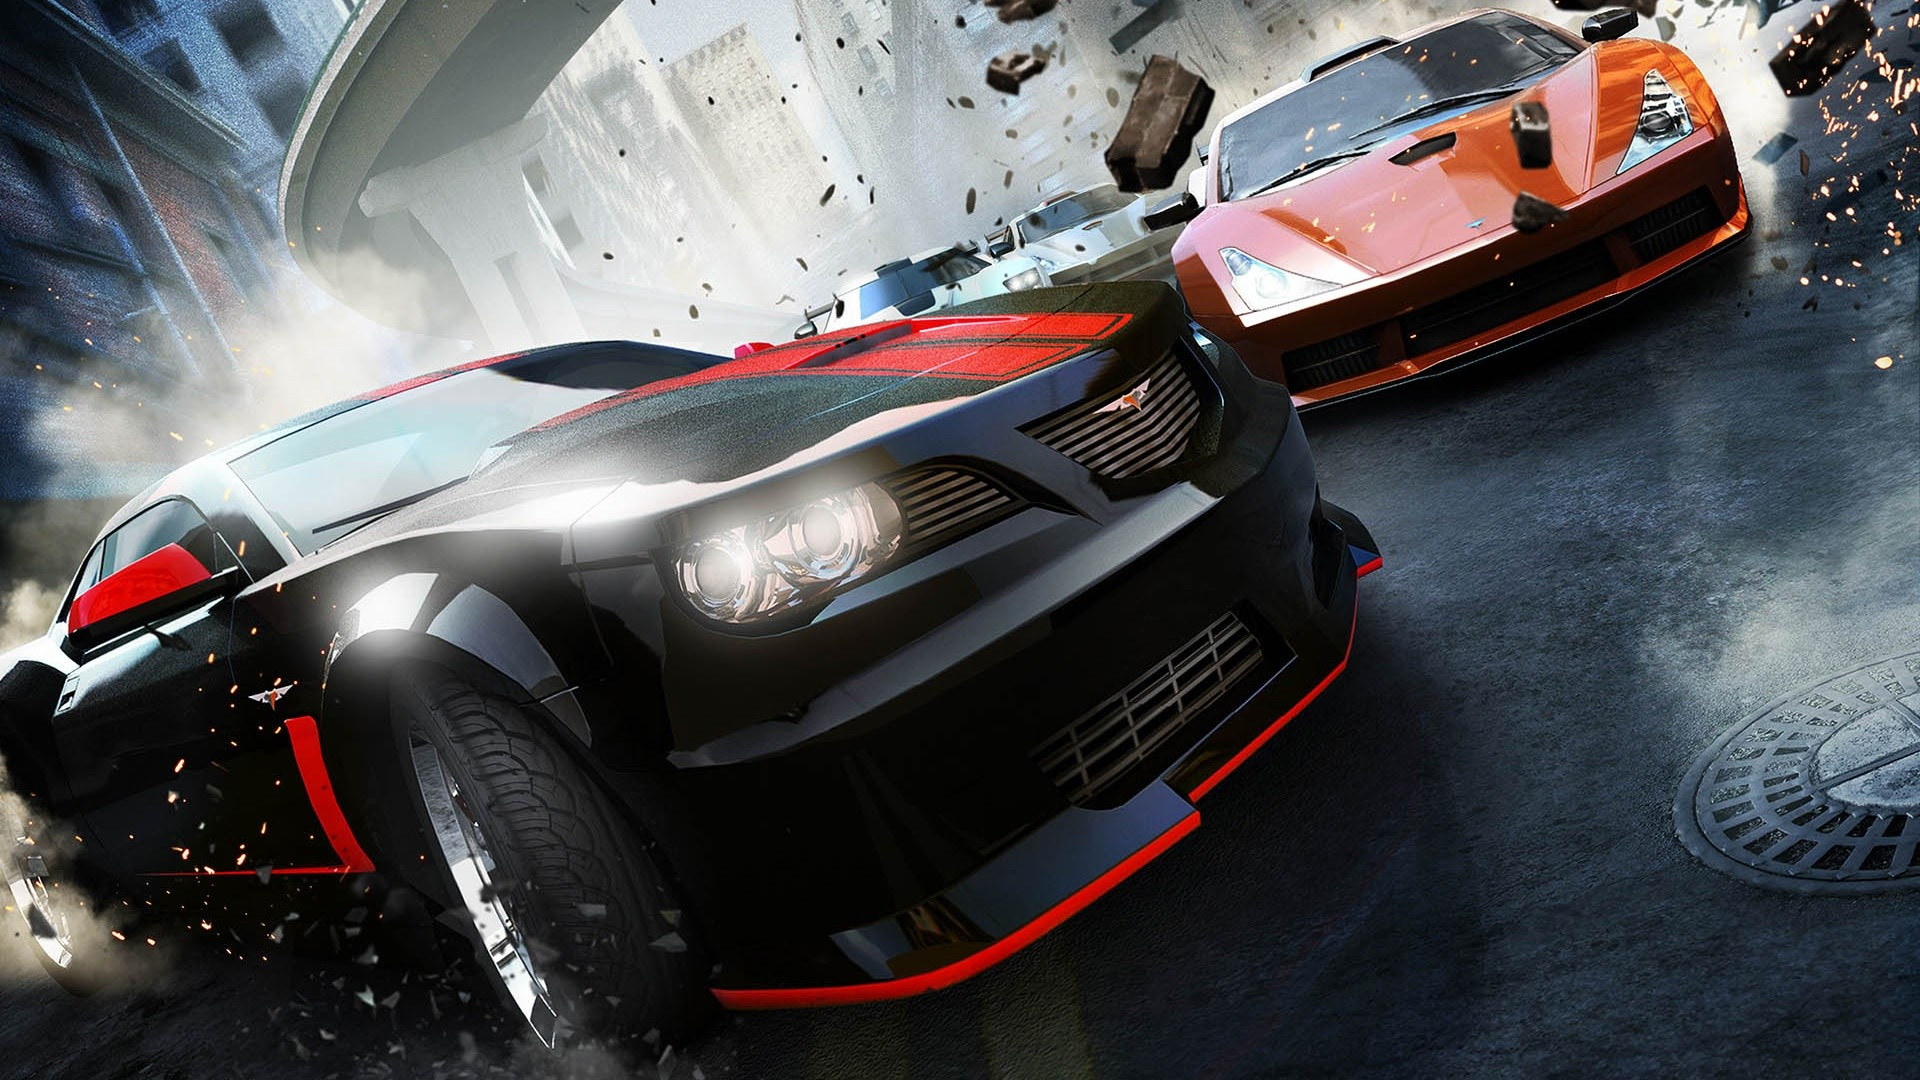 Ridge Racer Unbounded 2012